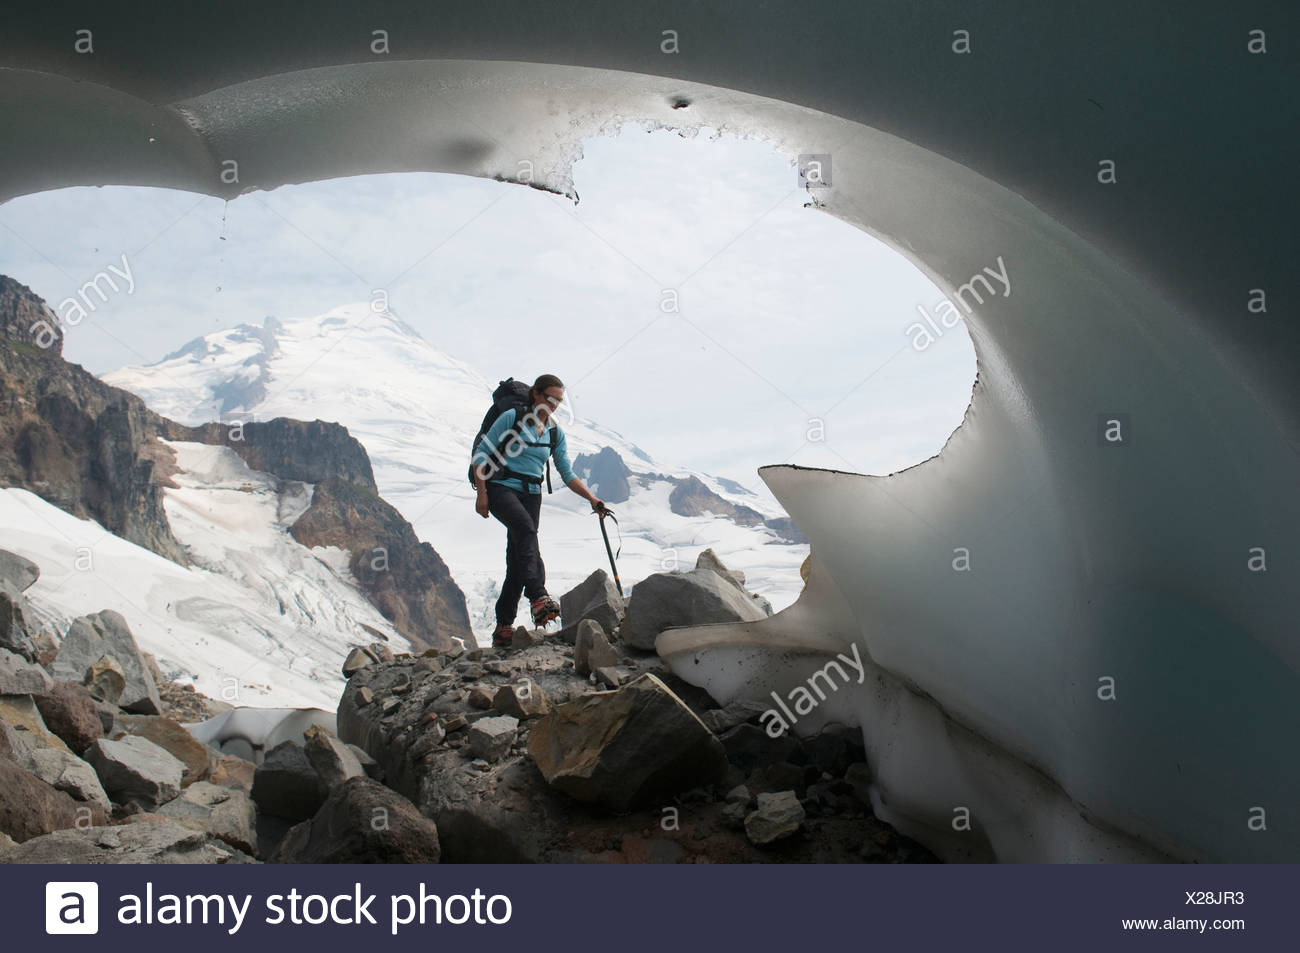 A mountaineering woman passing a glacial terminus, Mount Baker Wilderness, Bellingham, Washington. - Stock Image